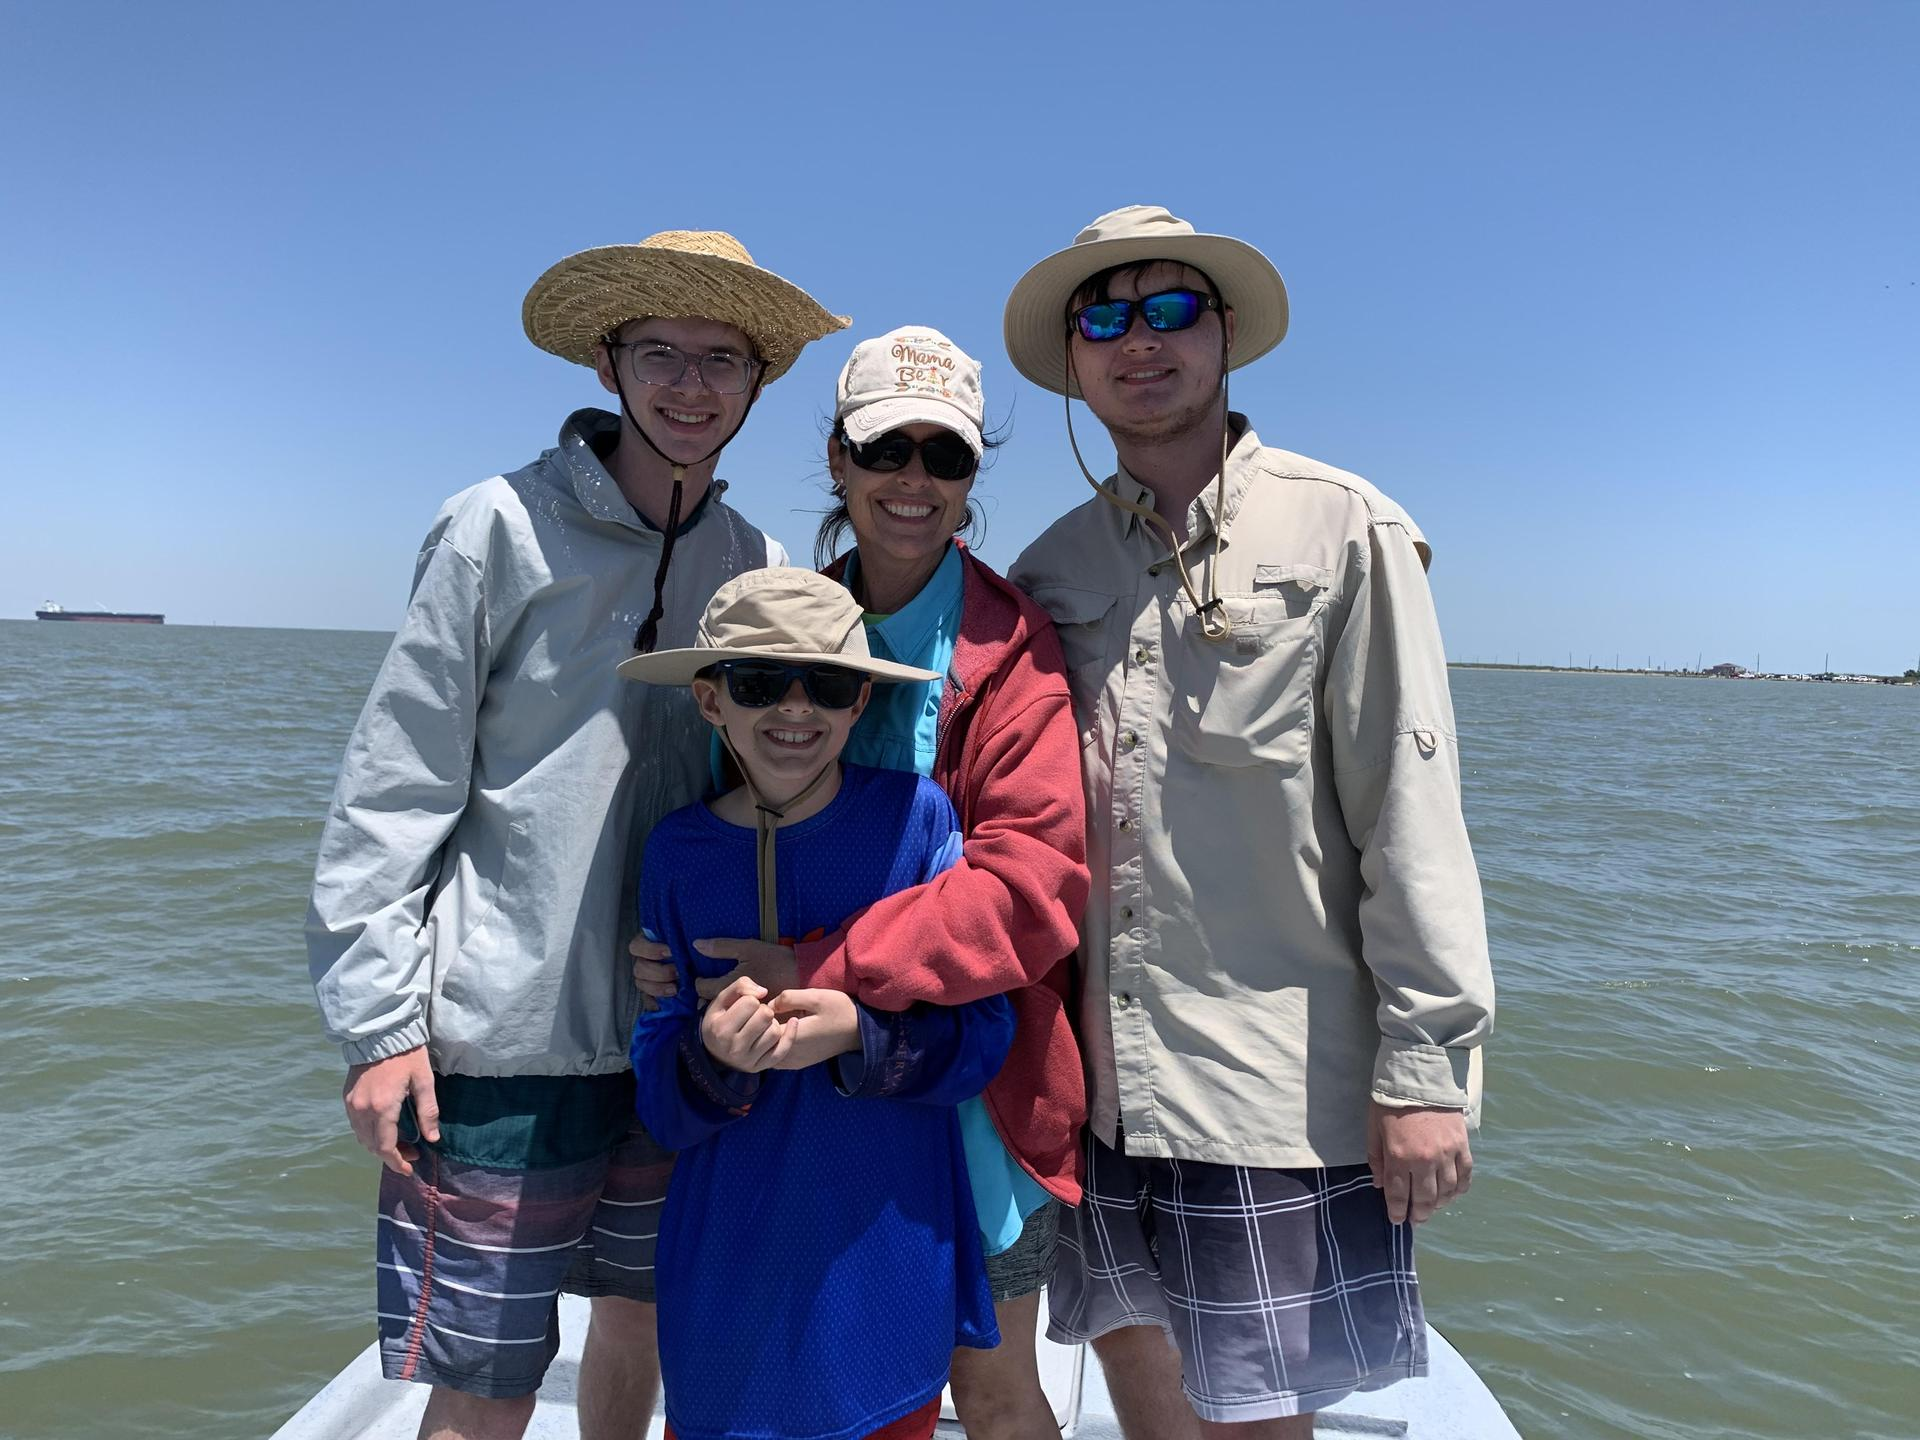 Bay fishing with my boys on Mother's Day - one of my favorite things to do!